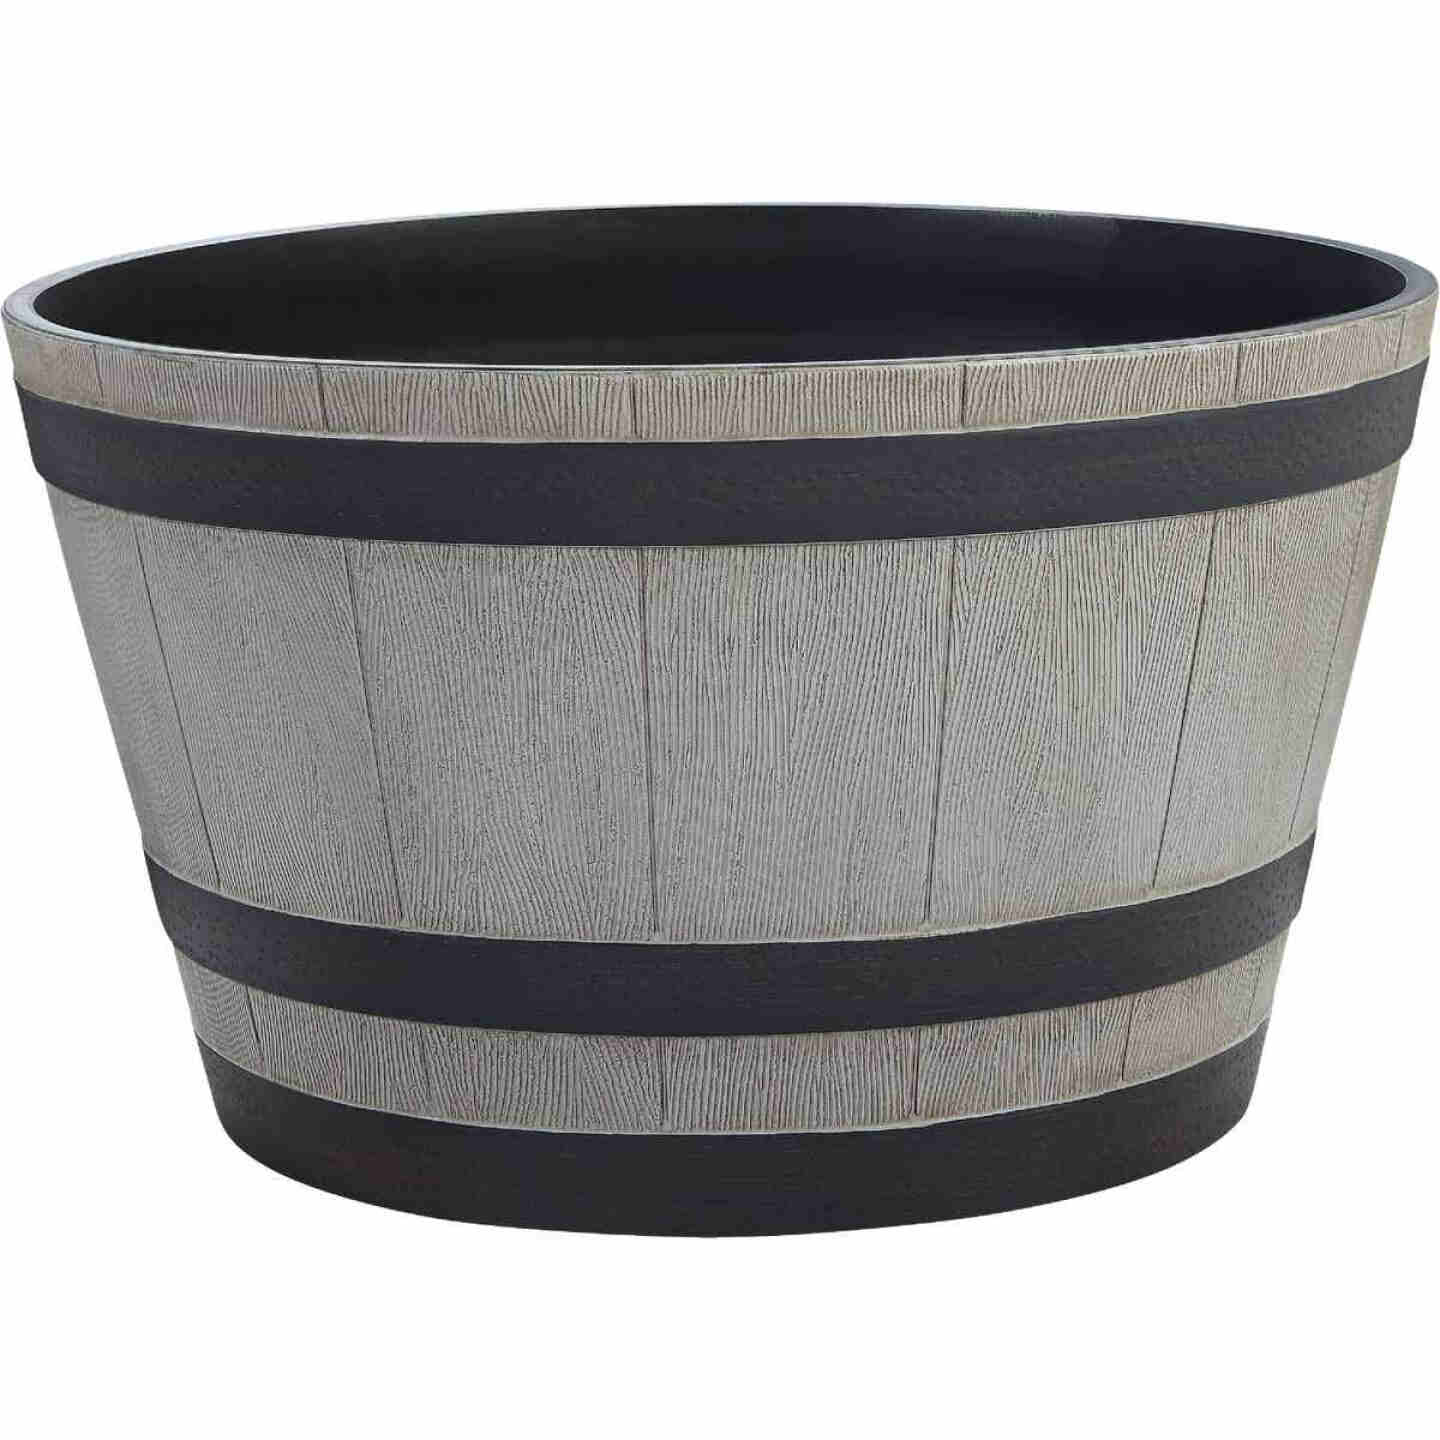 Southern Patio 13-1/2 In. H. x 22-1/2 In. Dia. Birchwood High-Density Resin Traditional Whiskey Barrel Planter Image 1